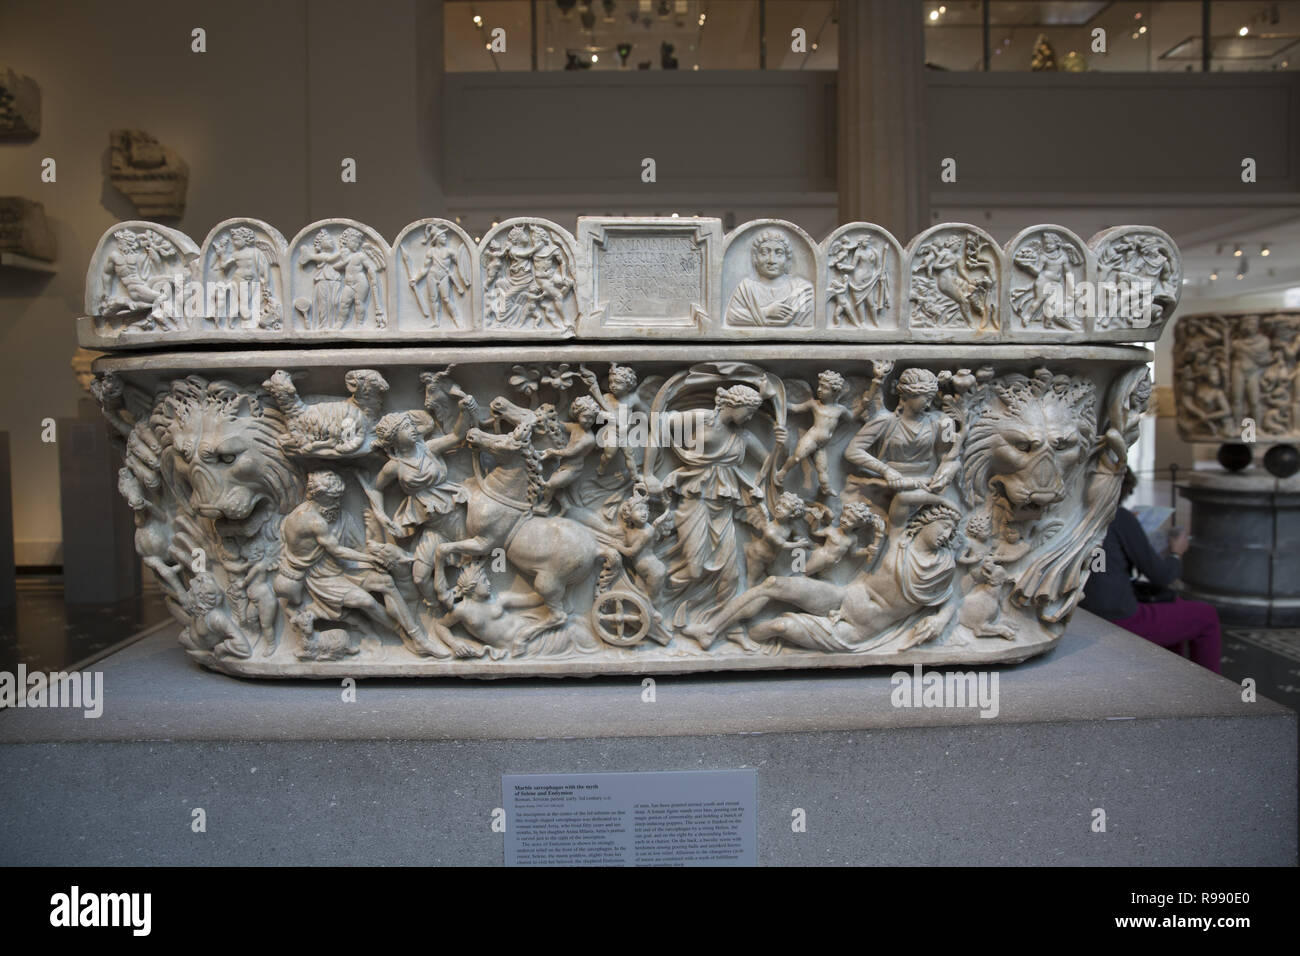 Marble sarcophogus wth the myth of Selene and Endymion carved on to it. Roman, Severan period, early 3rd century A.D. - Stock Image